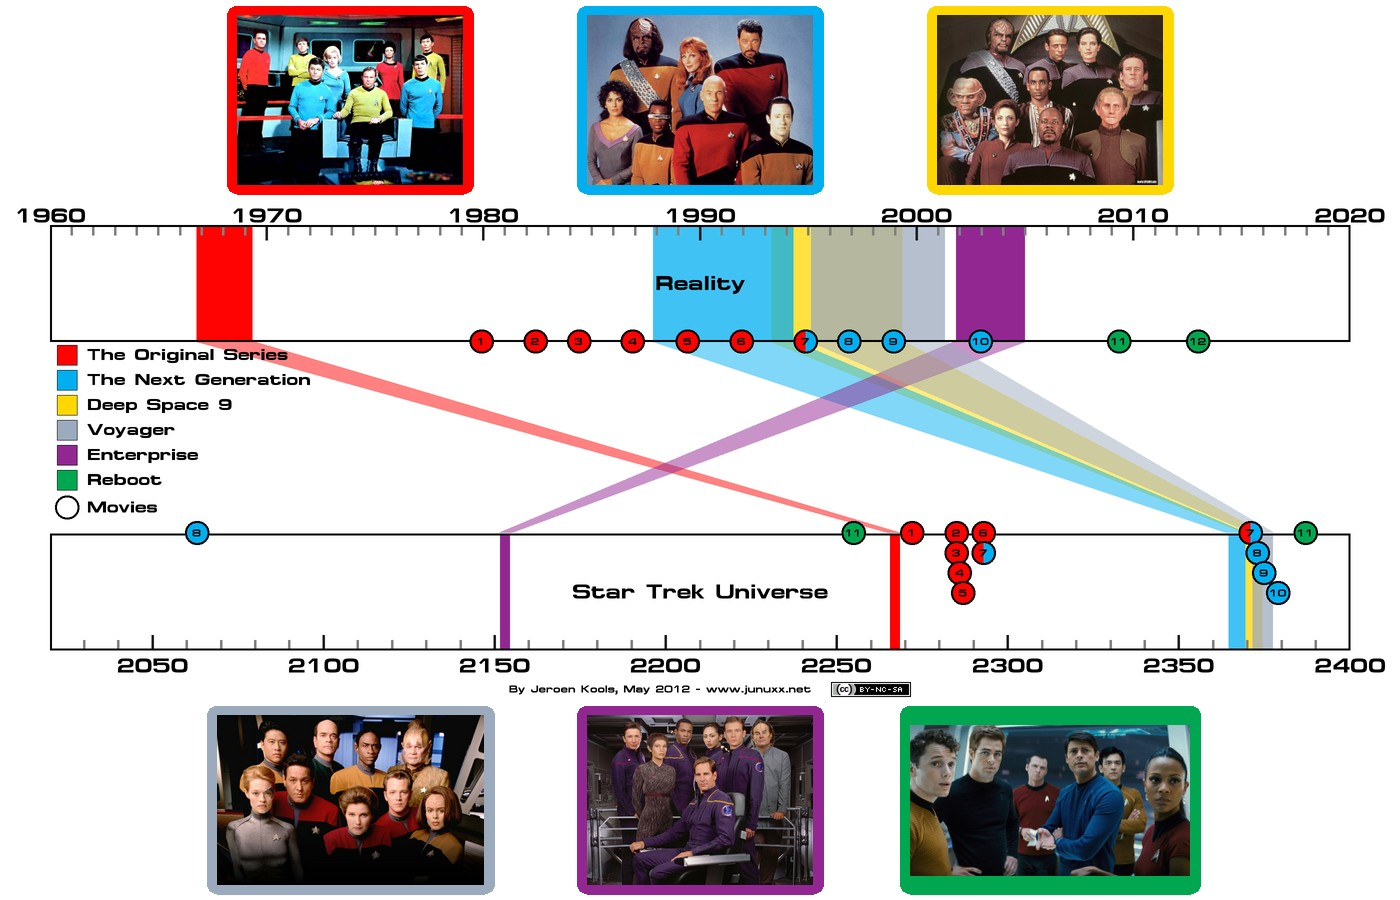 an analysis and timeline of the television show star trek And does not represent the stardate in the sto timeline notes on the timeline of star trek of all the star trek television chronology of star trek.